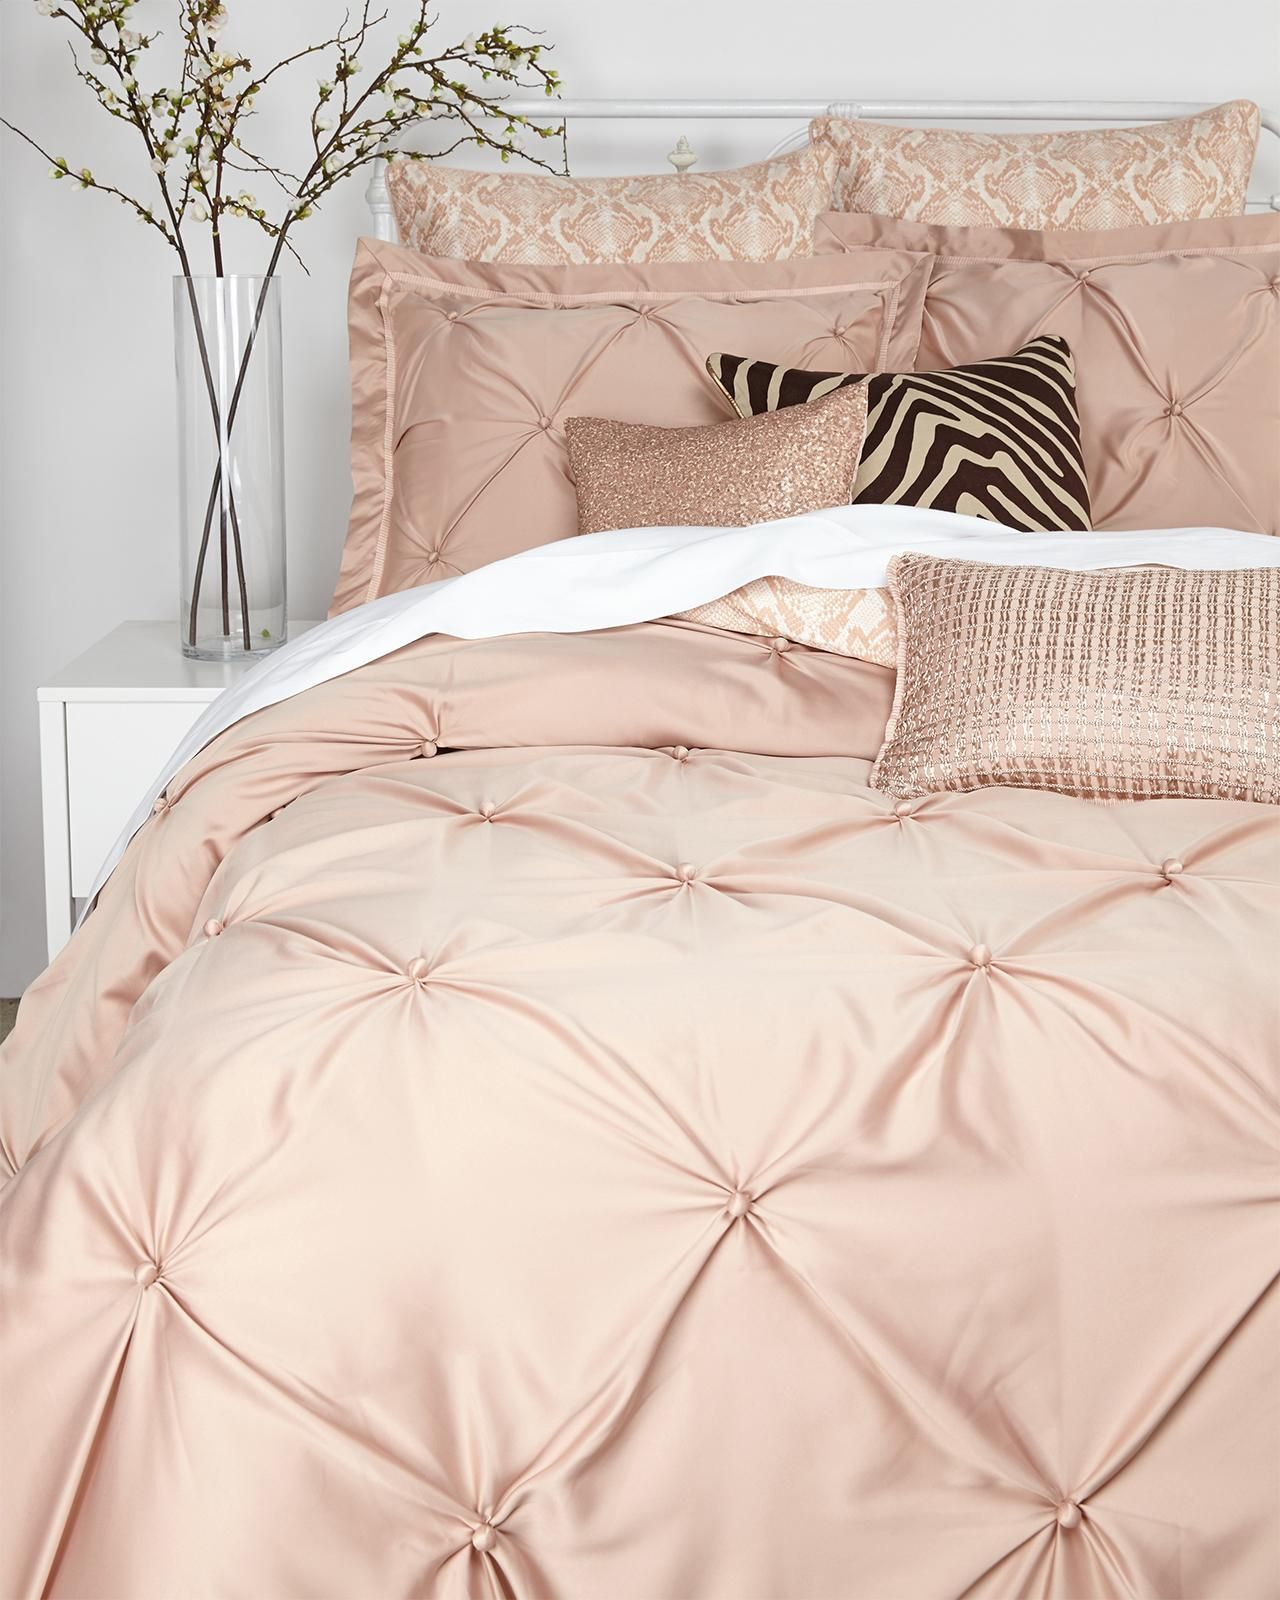 VINCE CAMUTO Rose Gold Queen Comforter Set  rose gold love  Pinterest  Queen comforter sets